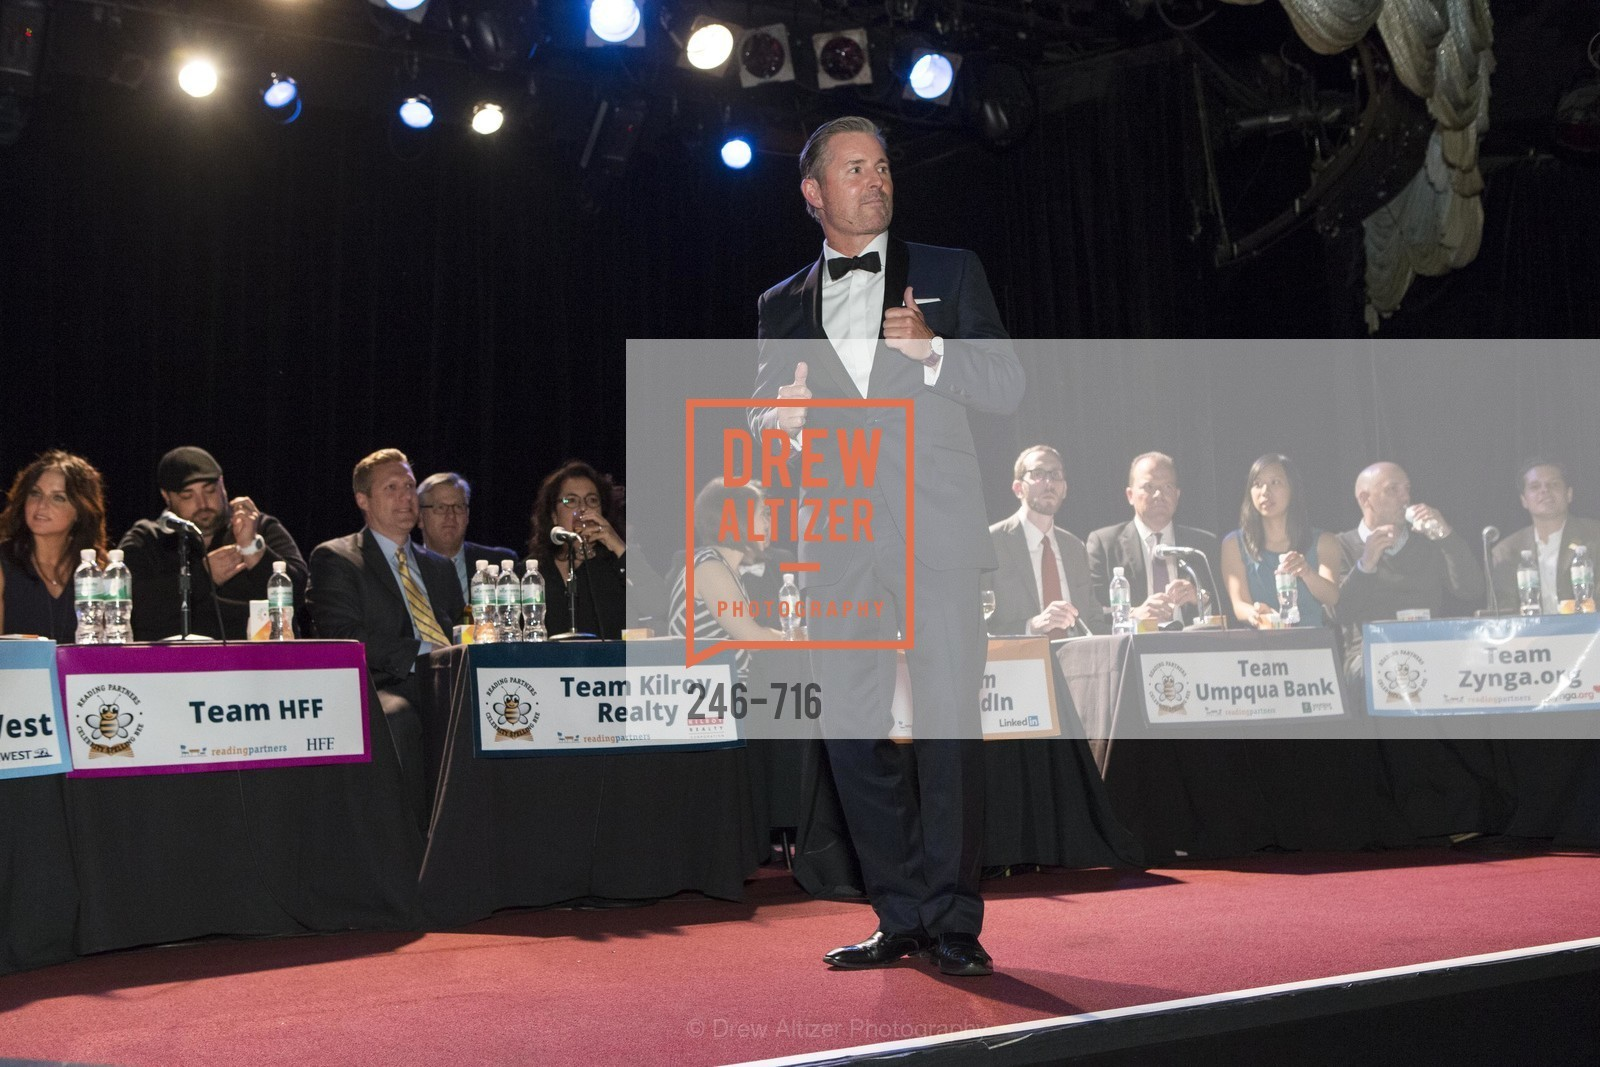 Doug Landis, READING PARTNERS BAY AREA Celebrity Spelling Bee, US, May 9th, 2015,Drew Altizer, Drew Altizer Photography, full-service event agency, private events, San Francisco photographer, photographer California